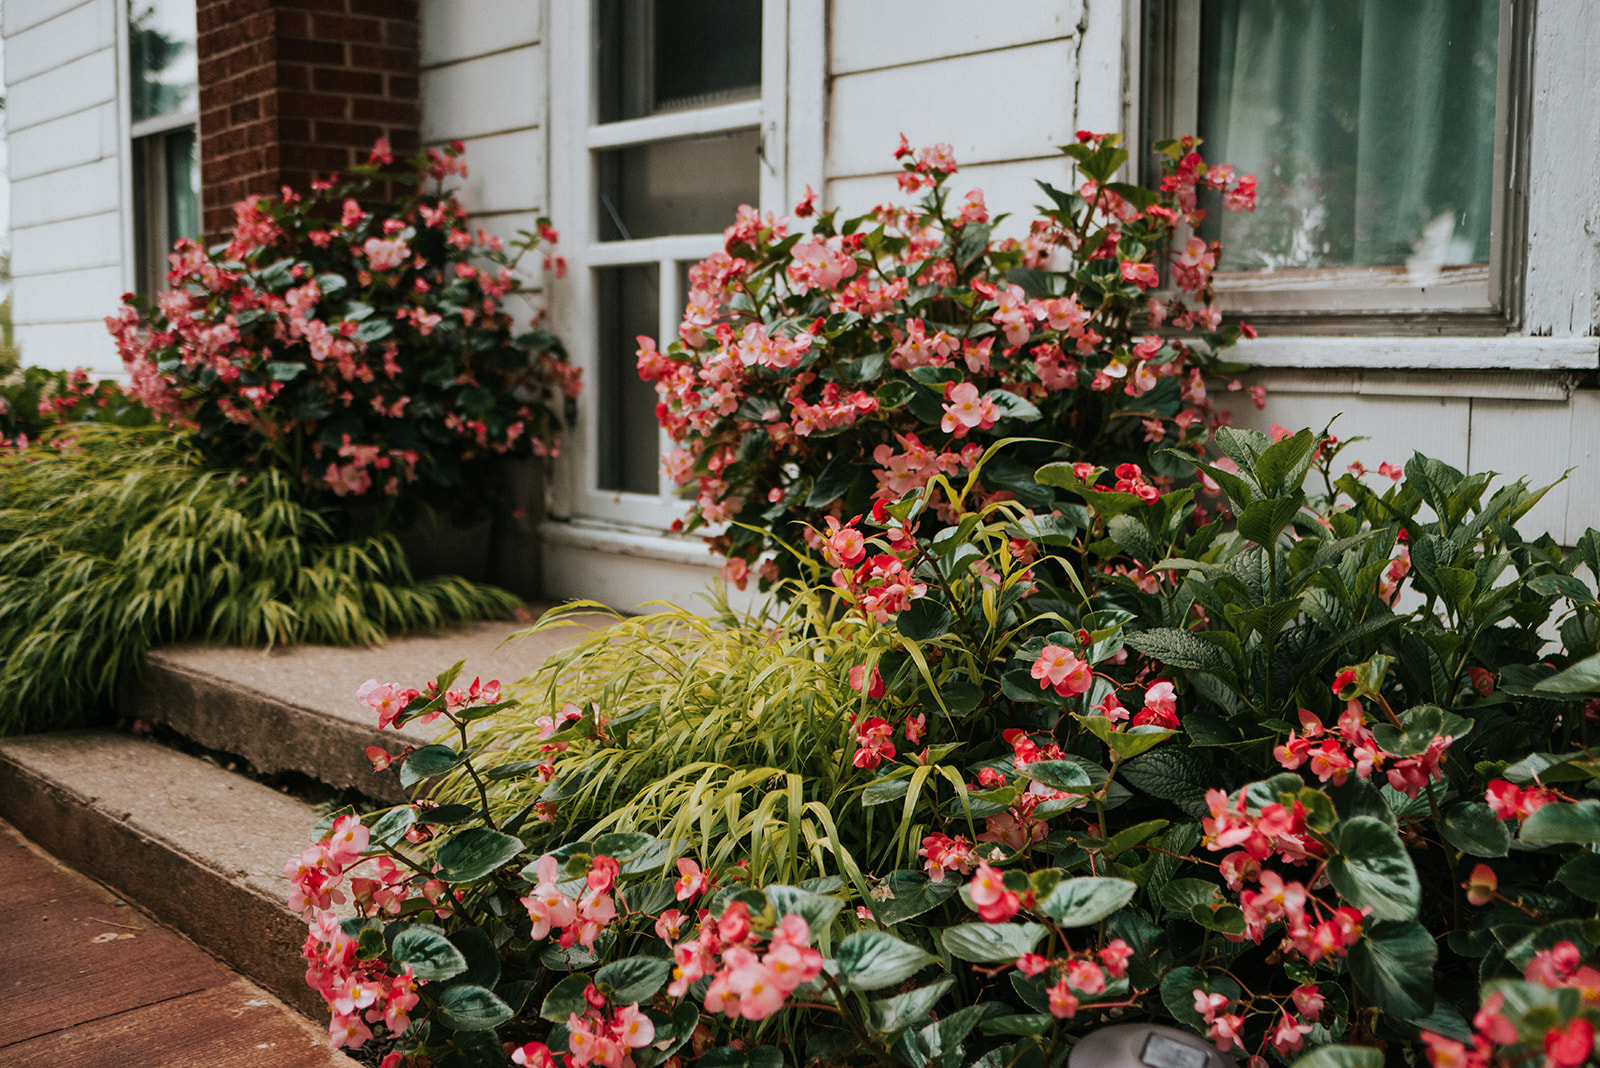 overthevineswisconsinwedding_0012.jpg